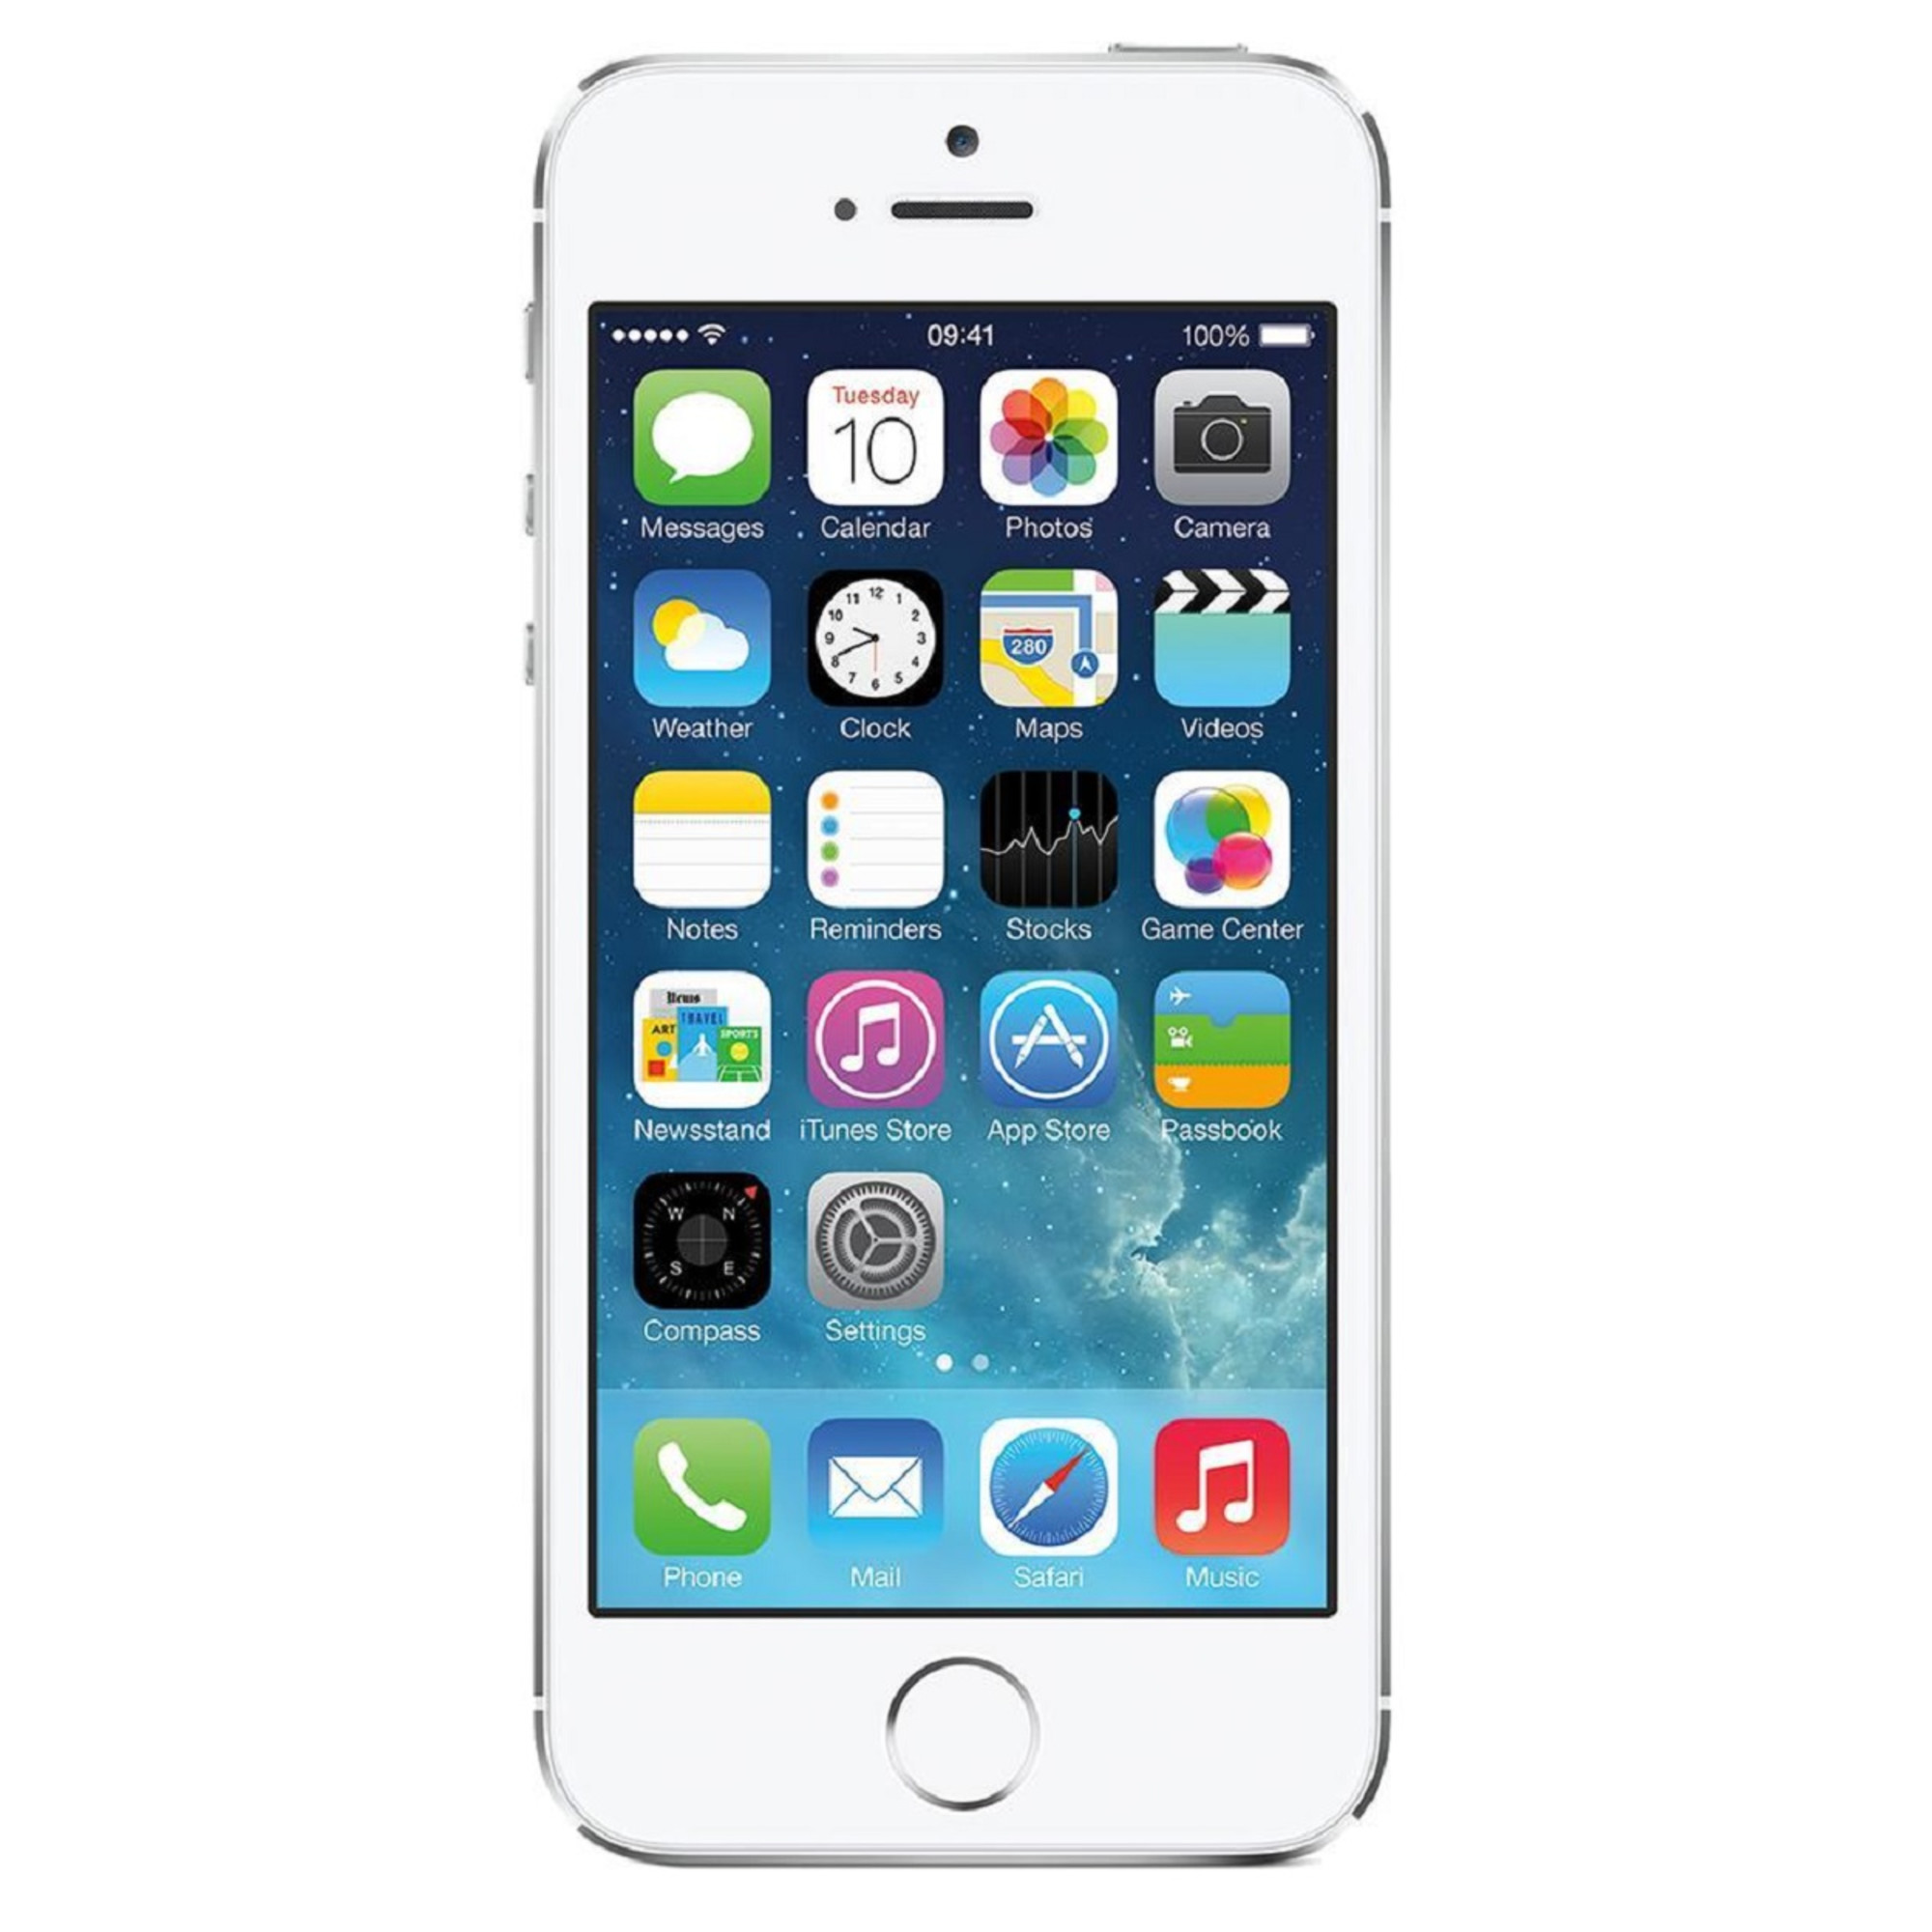 apple iphone 5s 16gb unlocked gsm lte dualcore 8mp phone certified refurbished. Black Bedroom Furniture Sets. Home Design Ideas